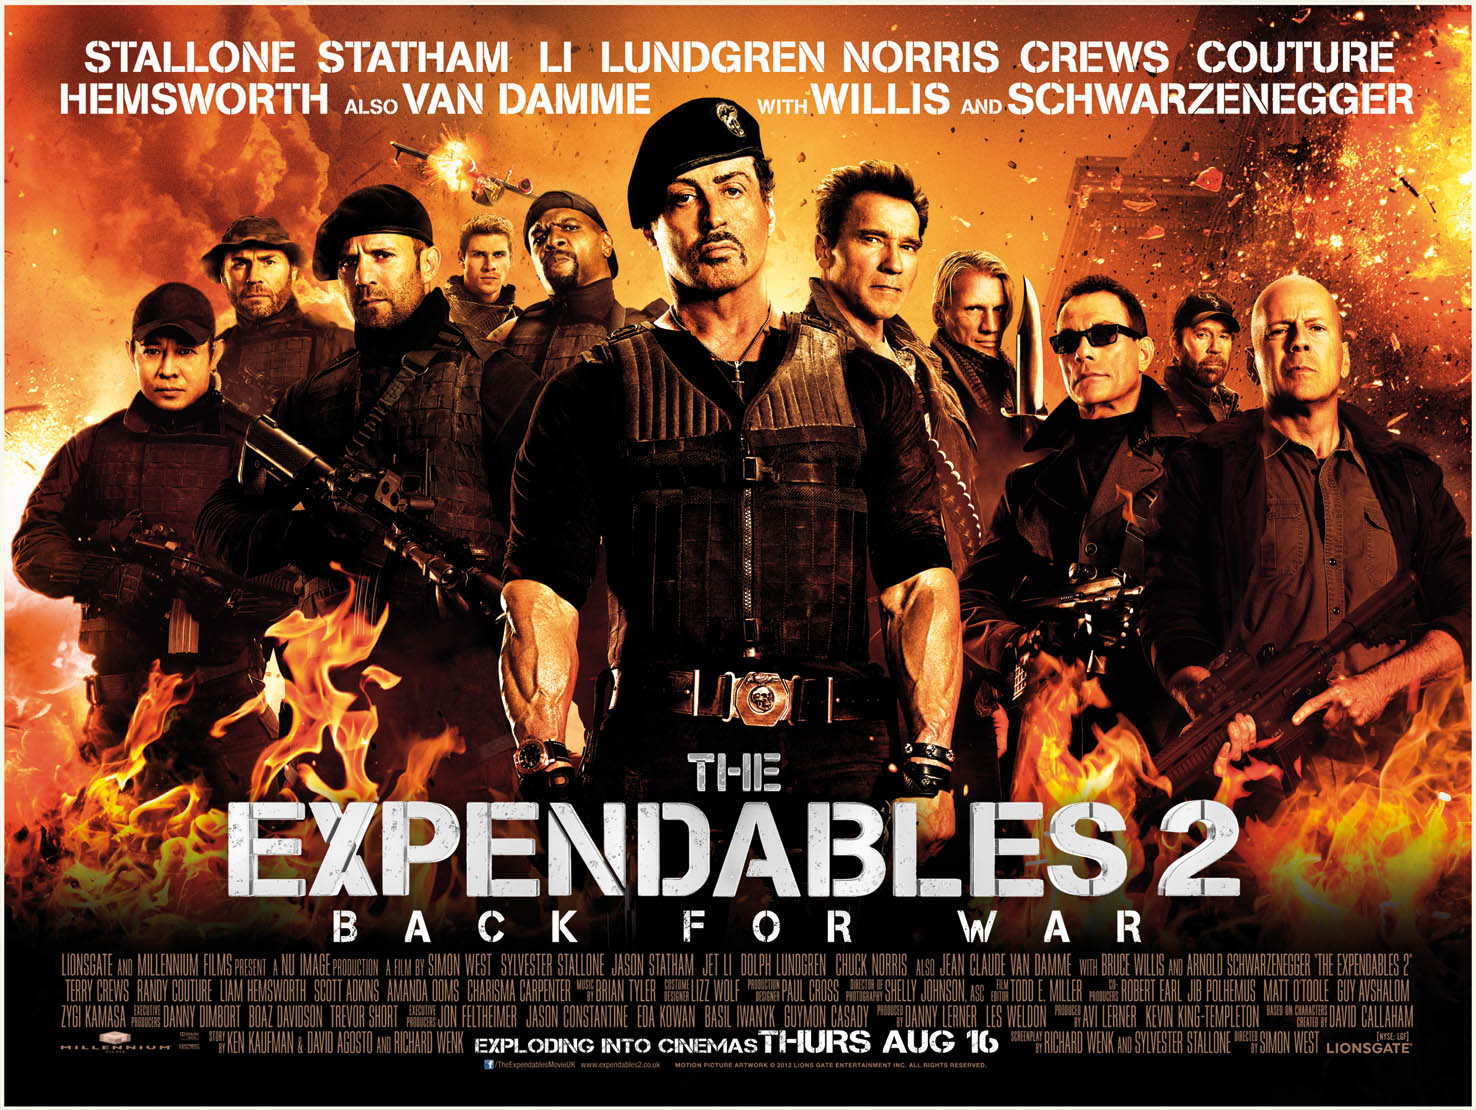 The Expendables UK Poster - HeyUGuys